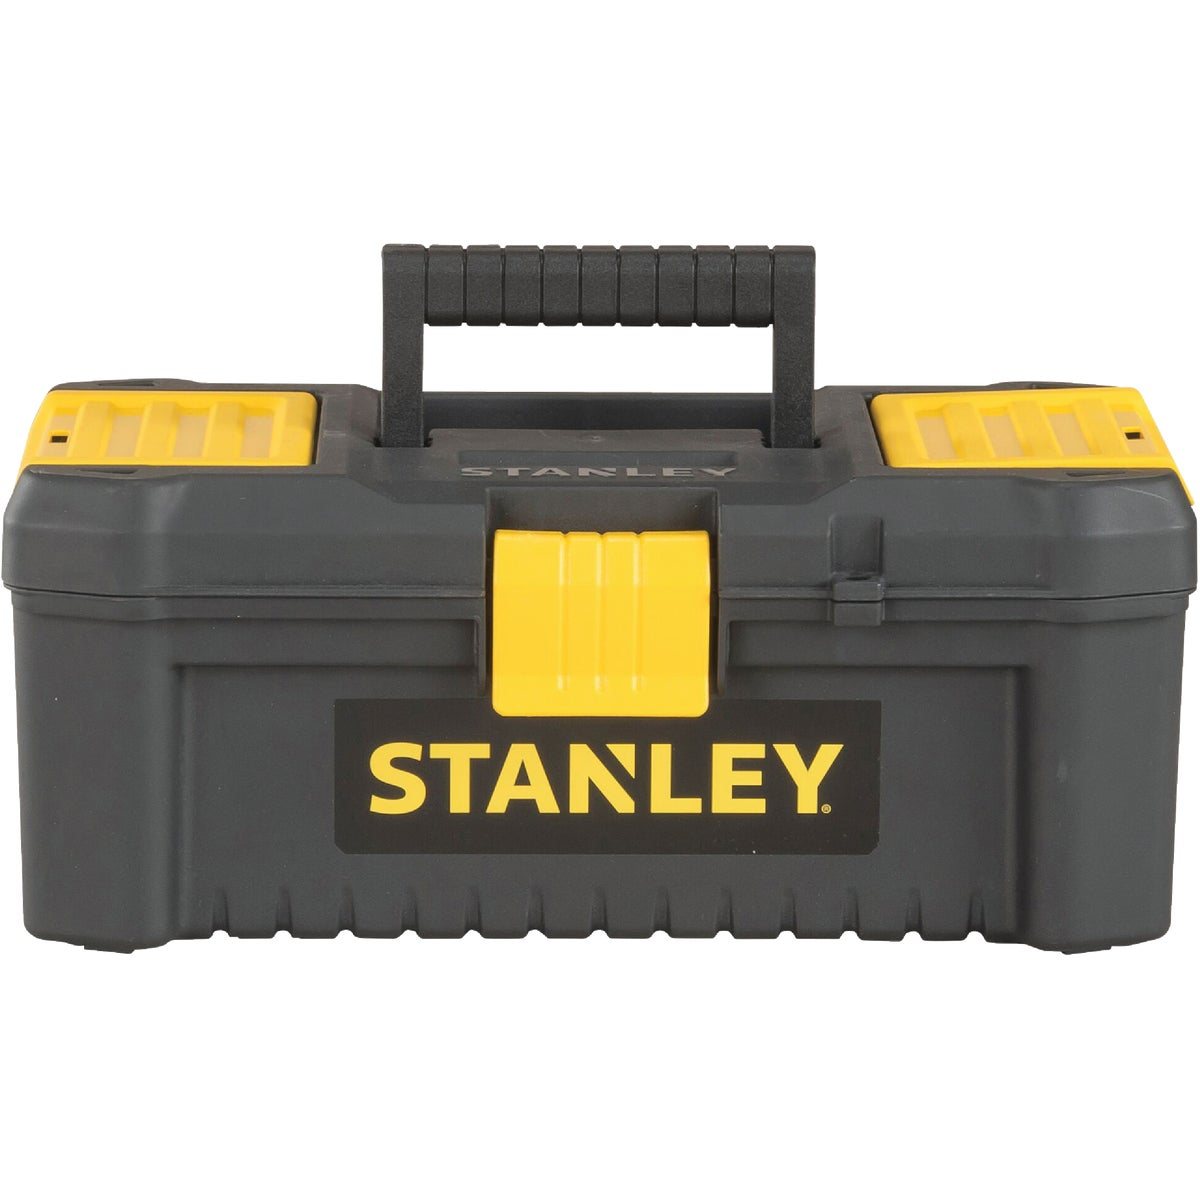 "13"" TOOL BOX W/ TRAY - 13805 by Flambeau Products Co"